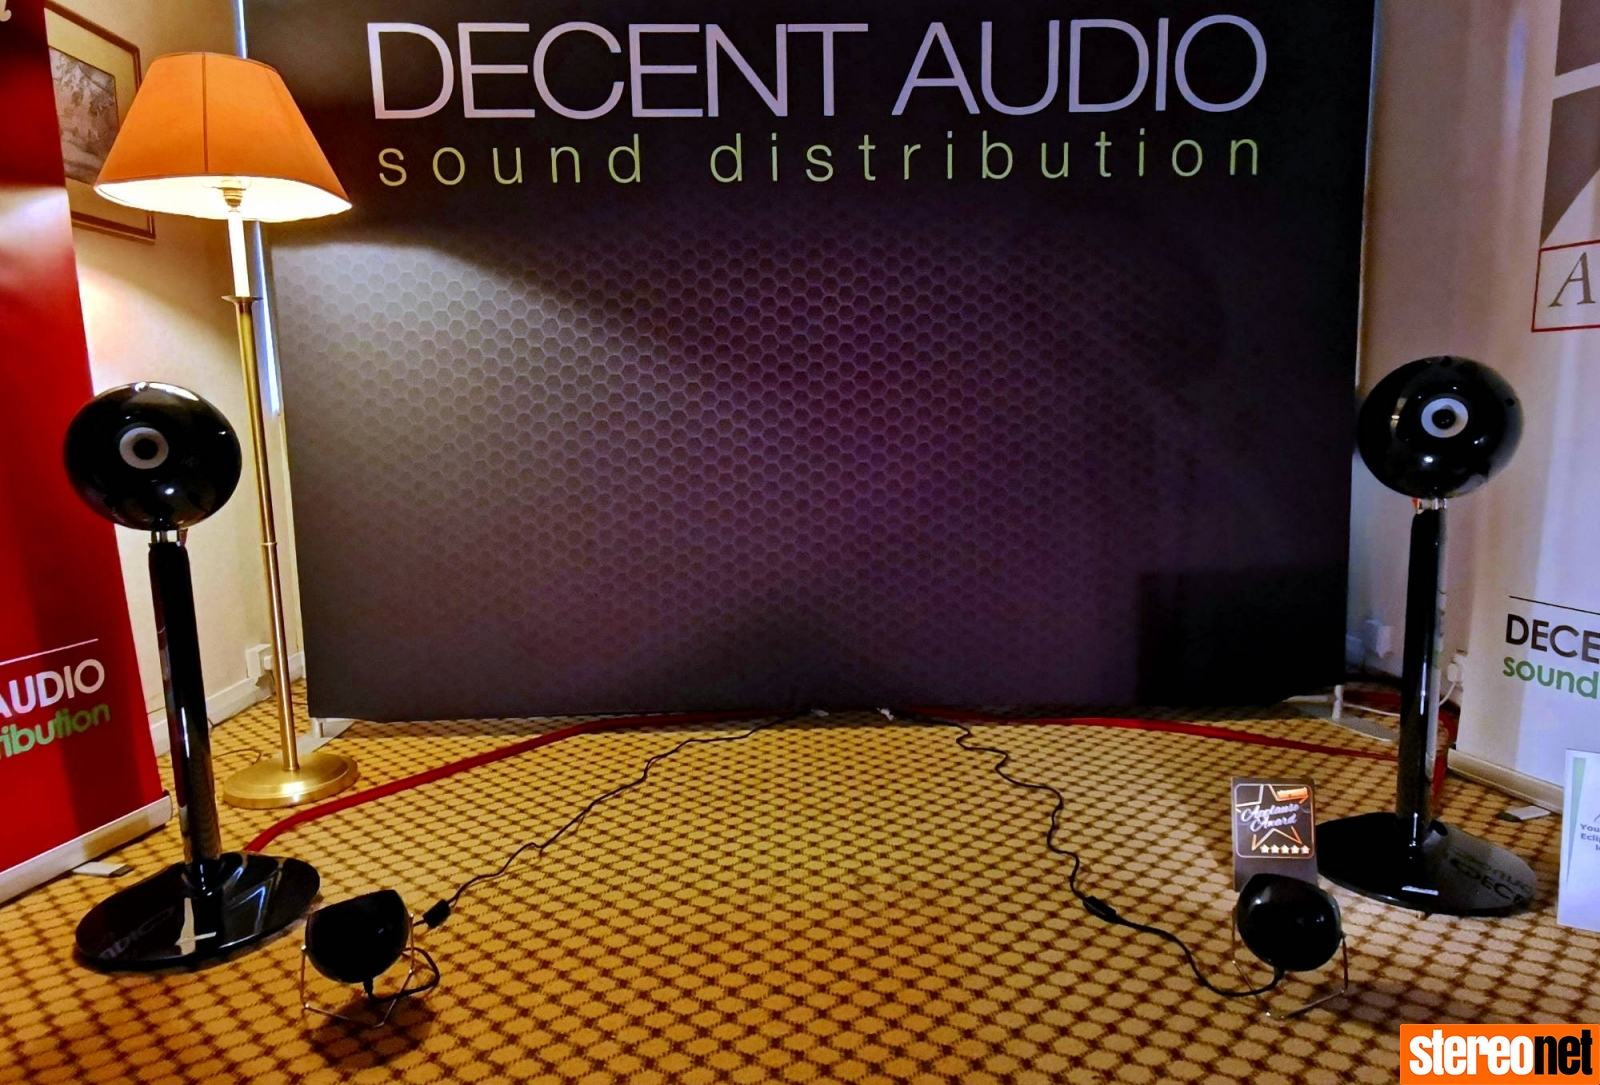 Decent Audio Eclipse Bristol hifi show 2020 report